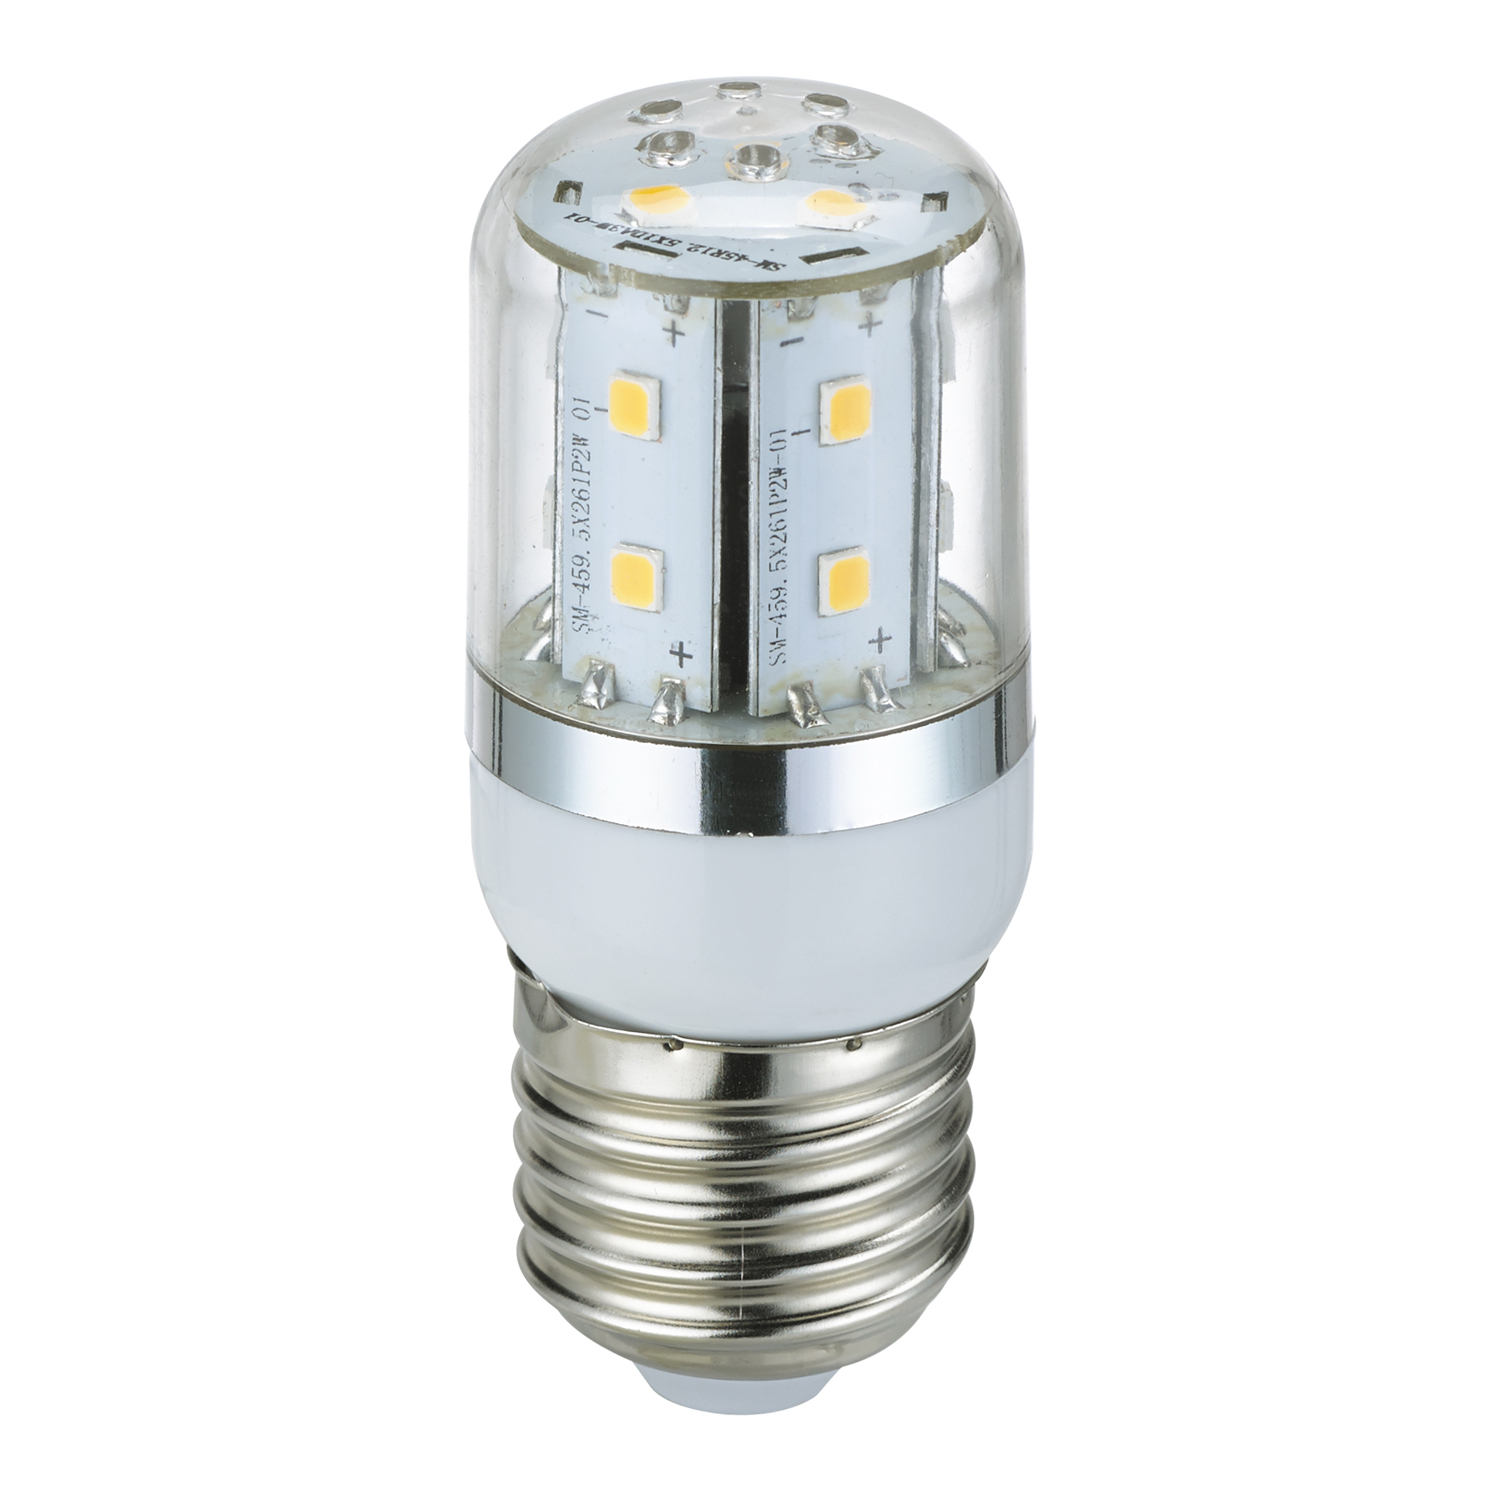 3 Watt E27 Edison Led Bulb, White